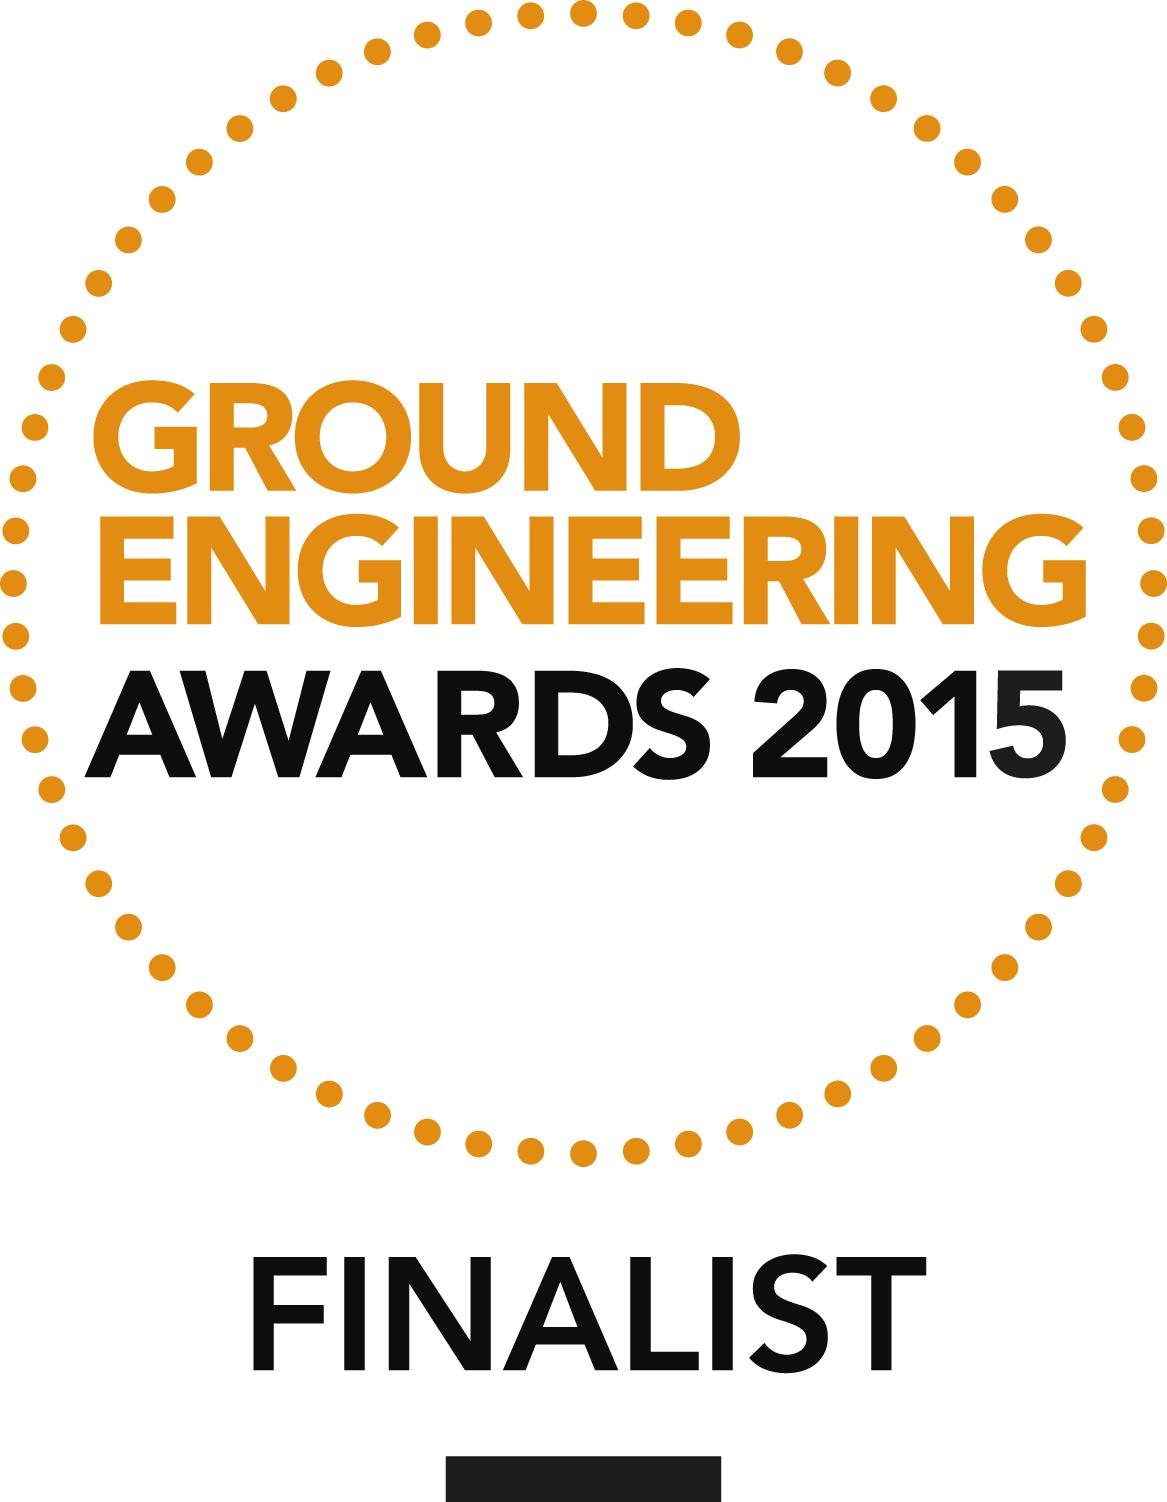 Six nominations for Ground Engineering Awards 2015